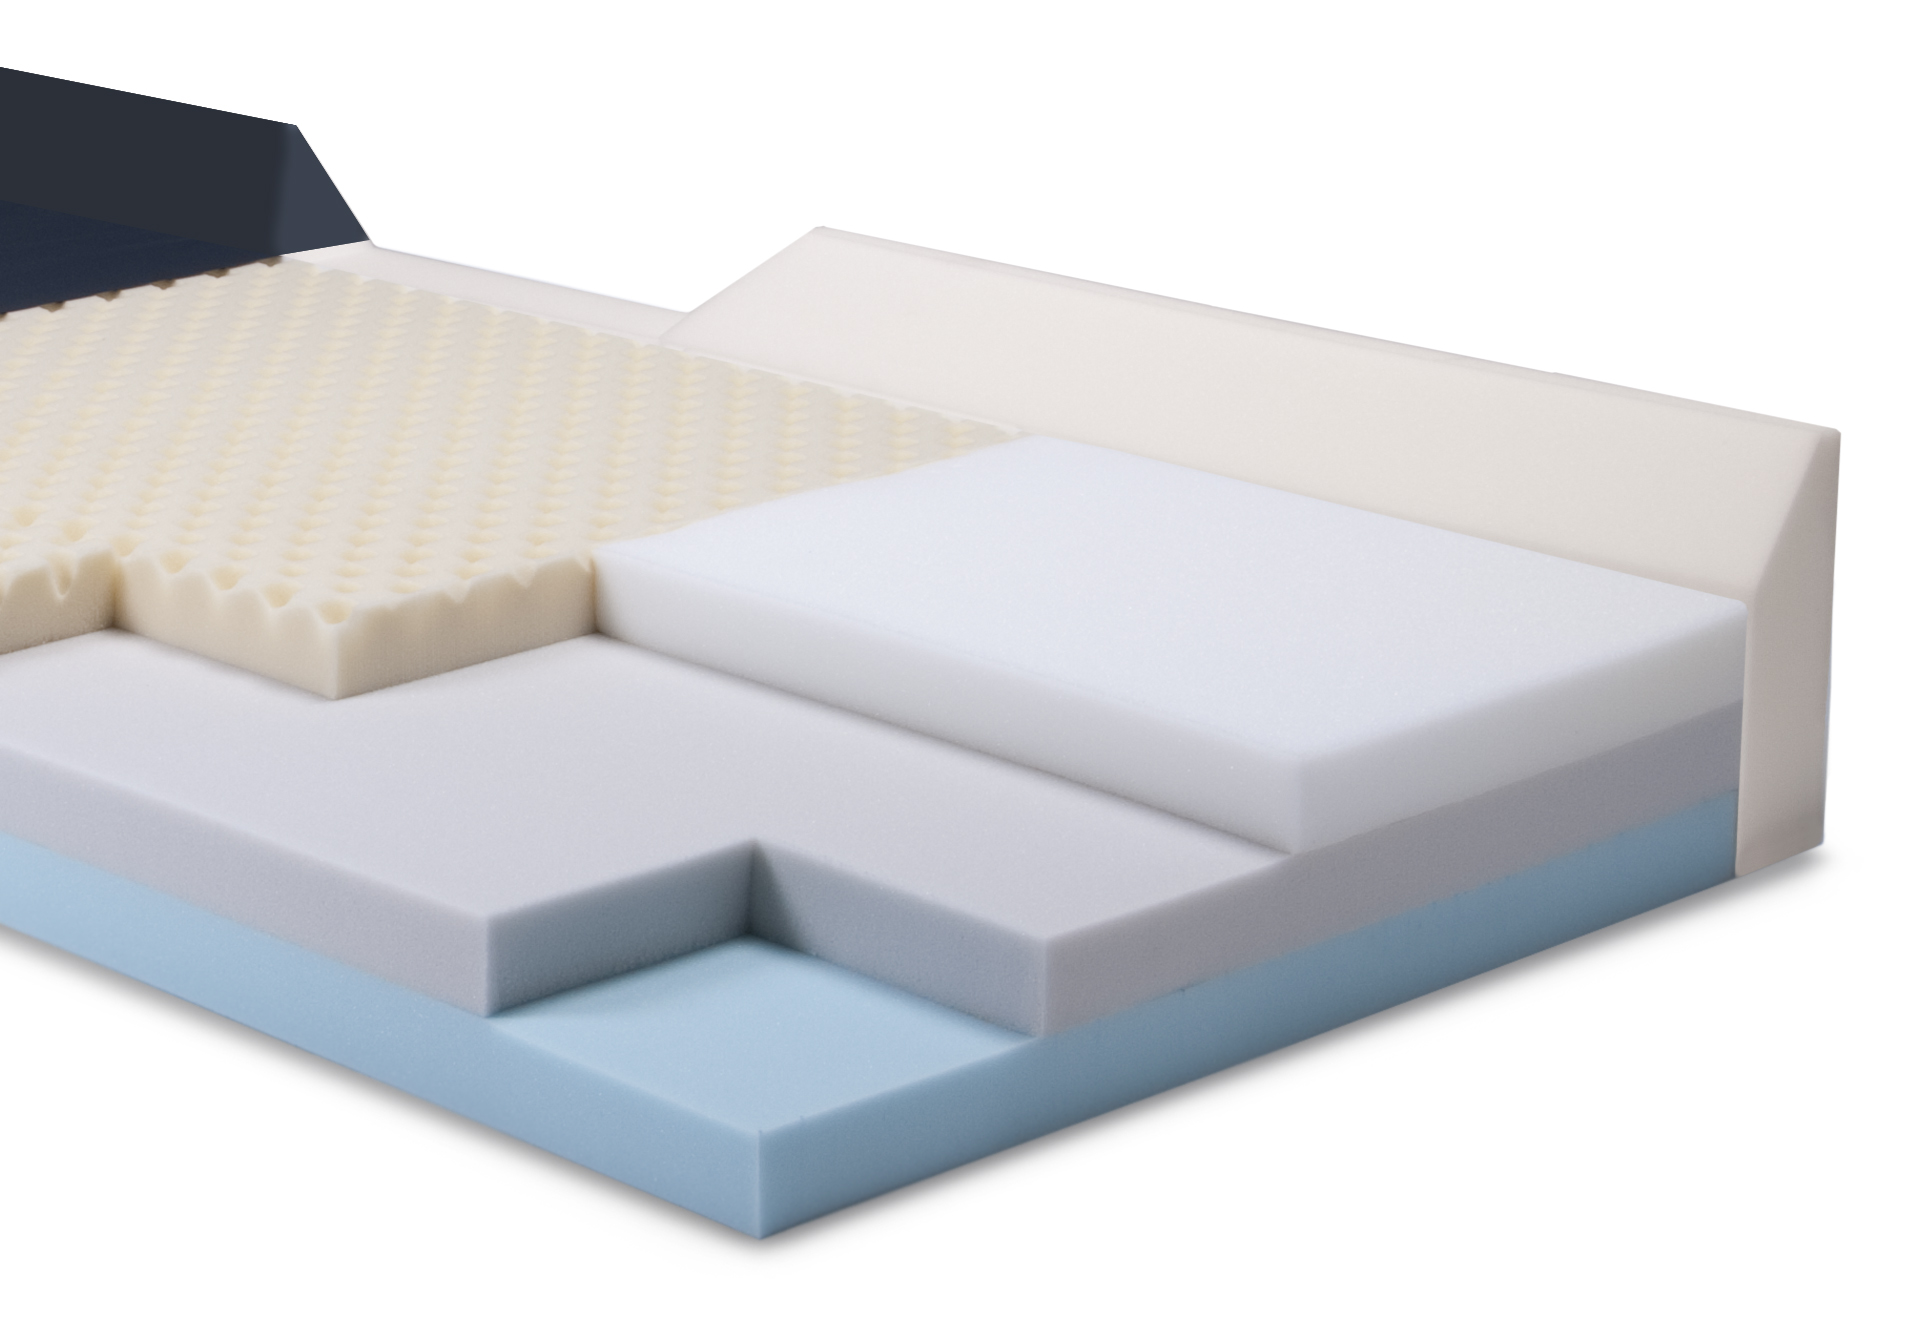 Choosing a Healthcare Mattress How to Decide